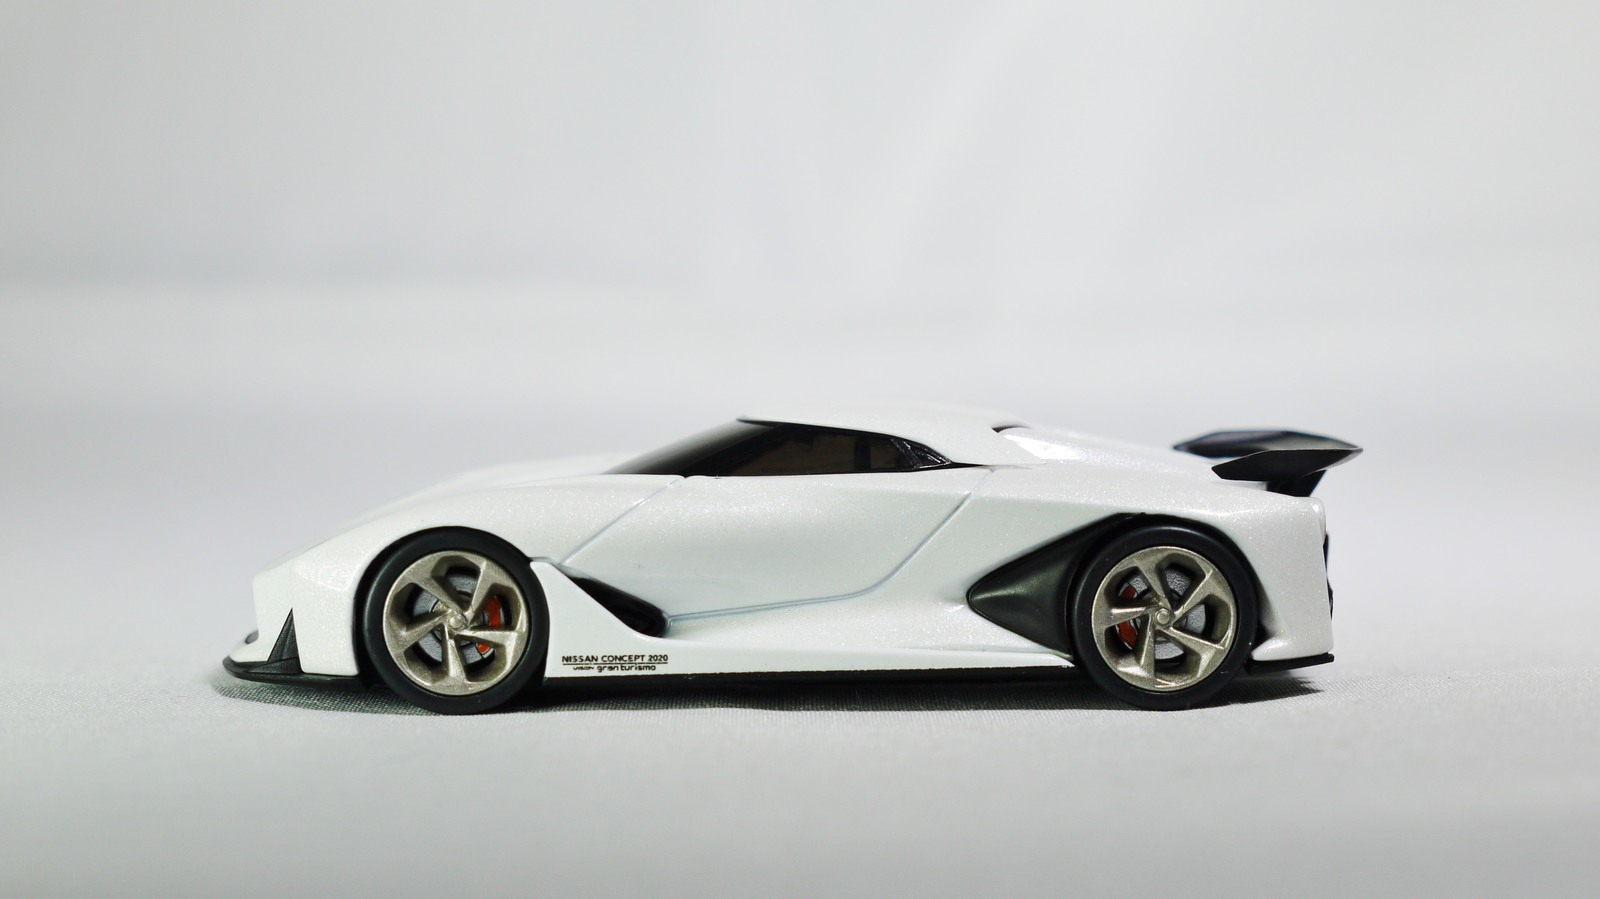 TOMICA TOMYTEC VINTAGE NEO GT NISSAN CONCEPT 2020 Vision Gran Turismo White